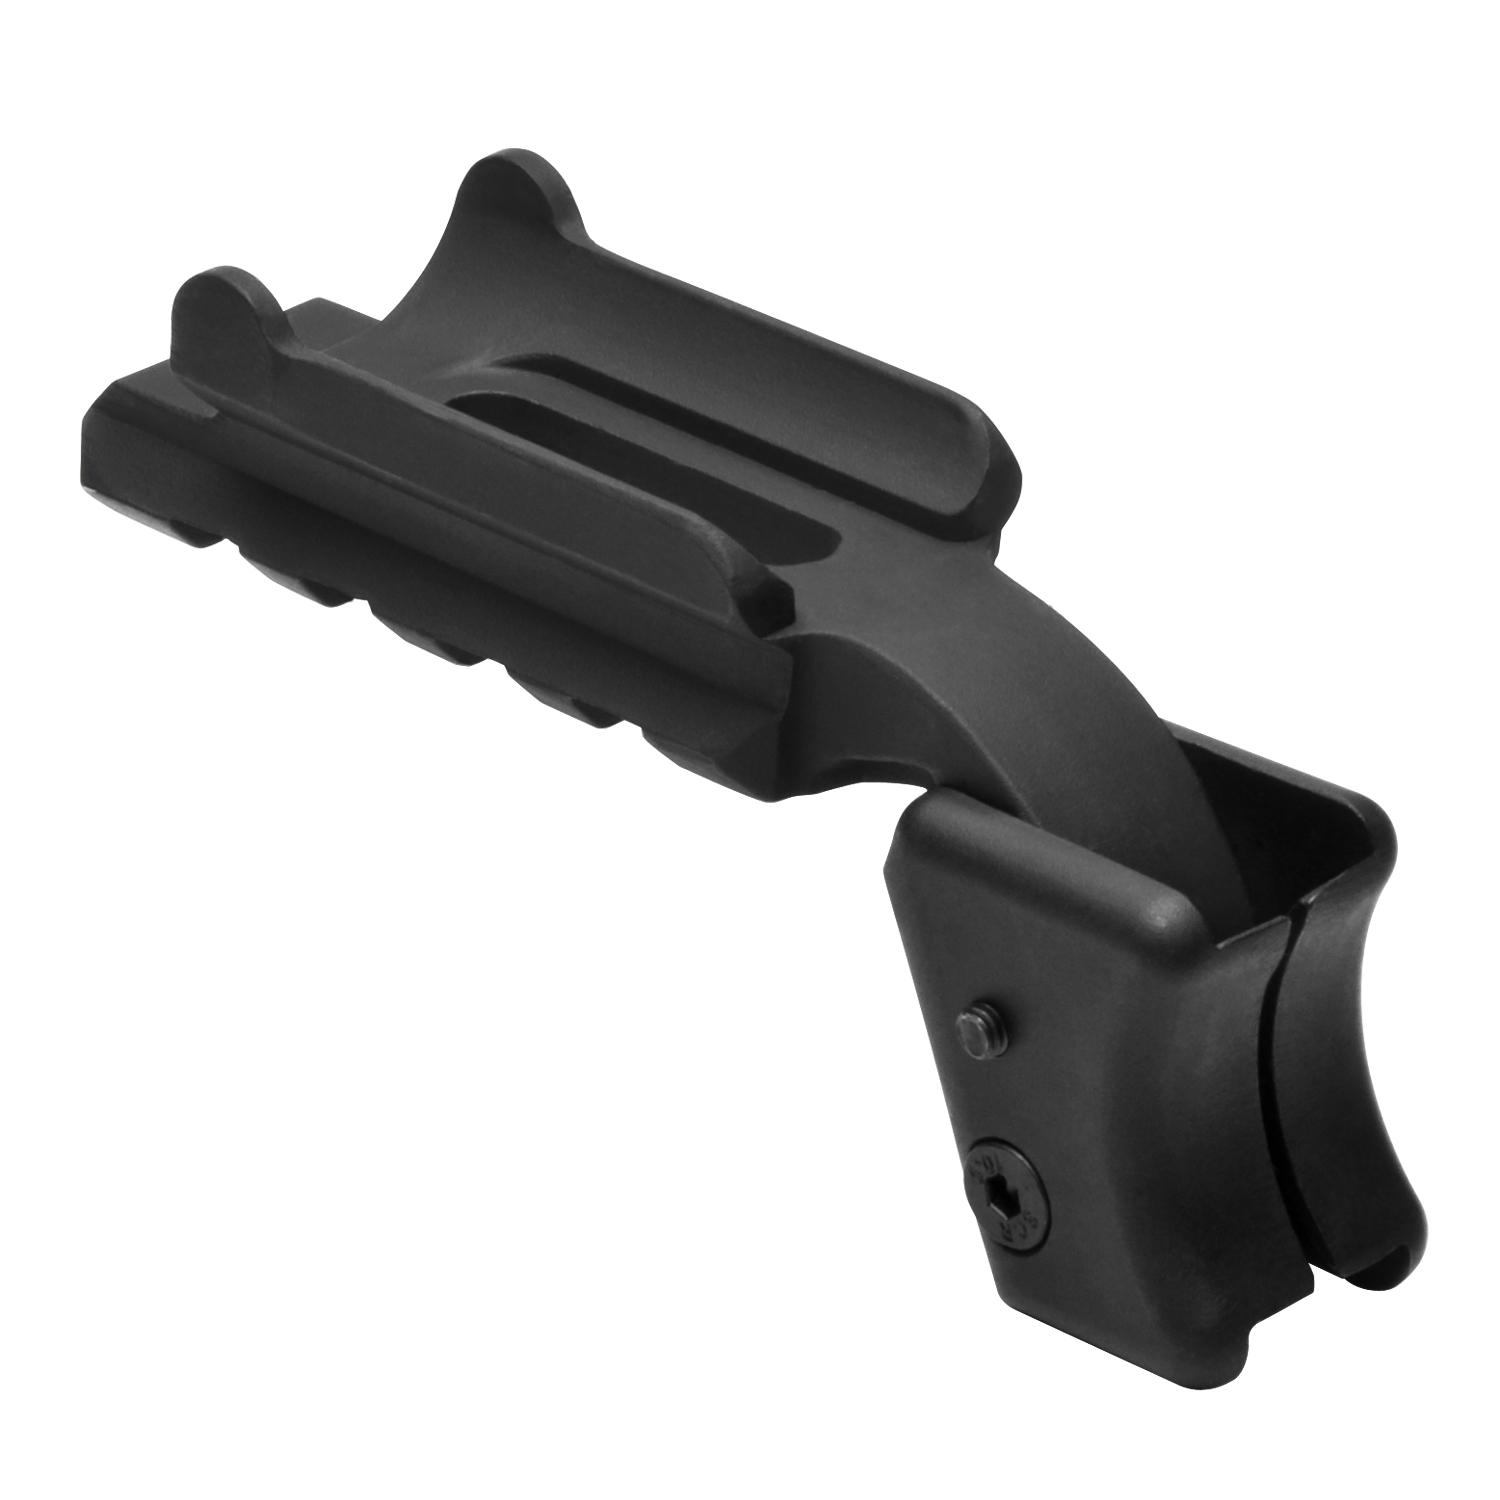 Ncstar Beretta 92FS And M9 gun Accessory Rail Adapter